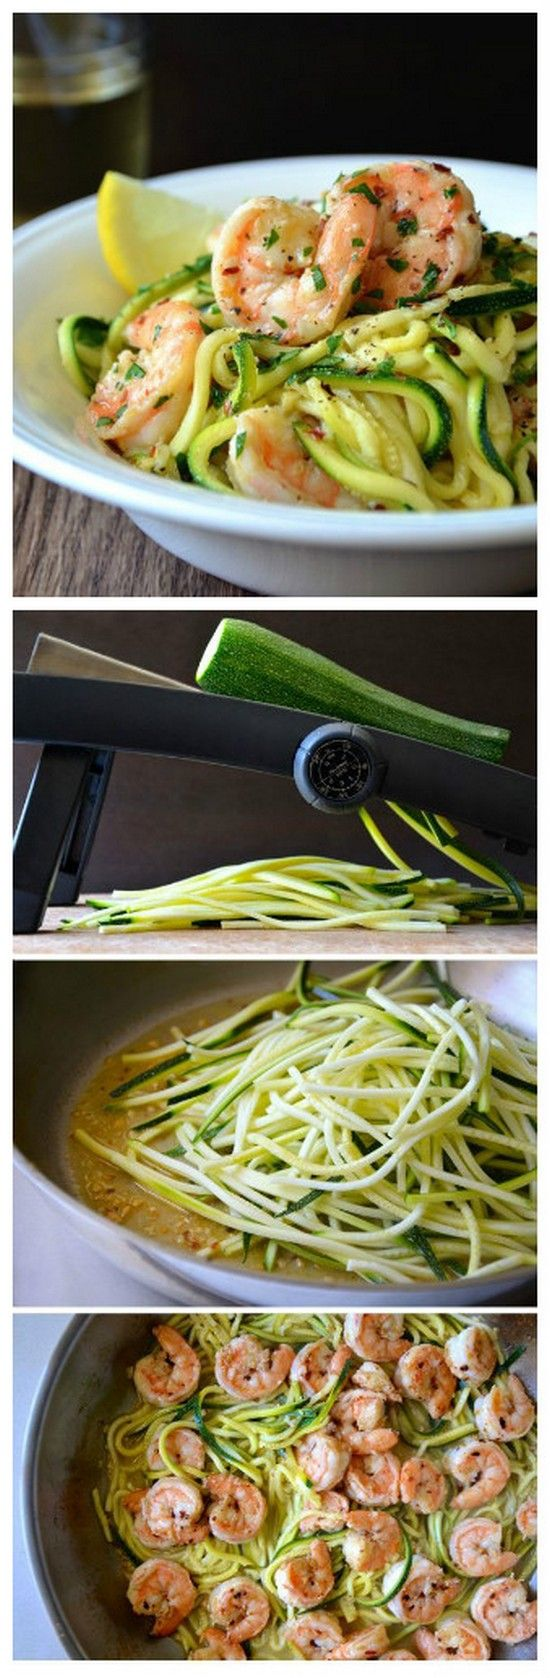 Skinny Shrimp Scampi with Zucchini Noodles | Gurman chef